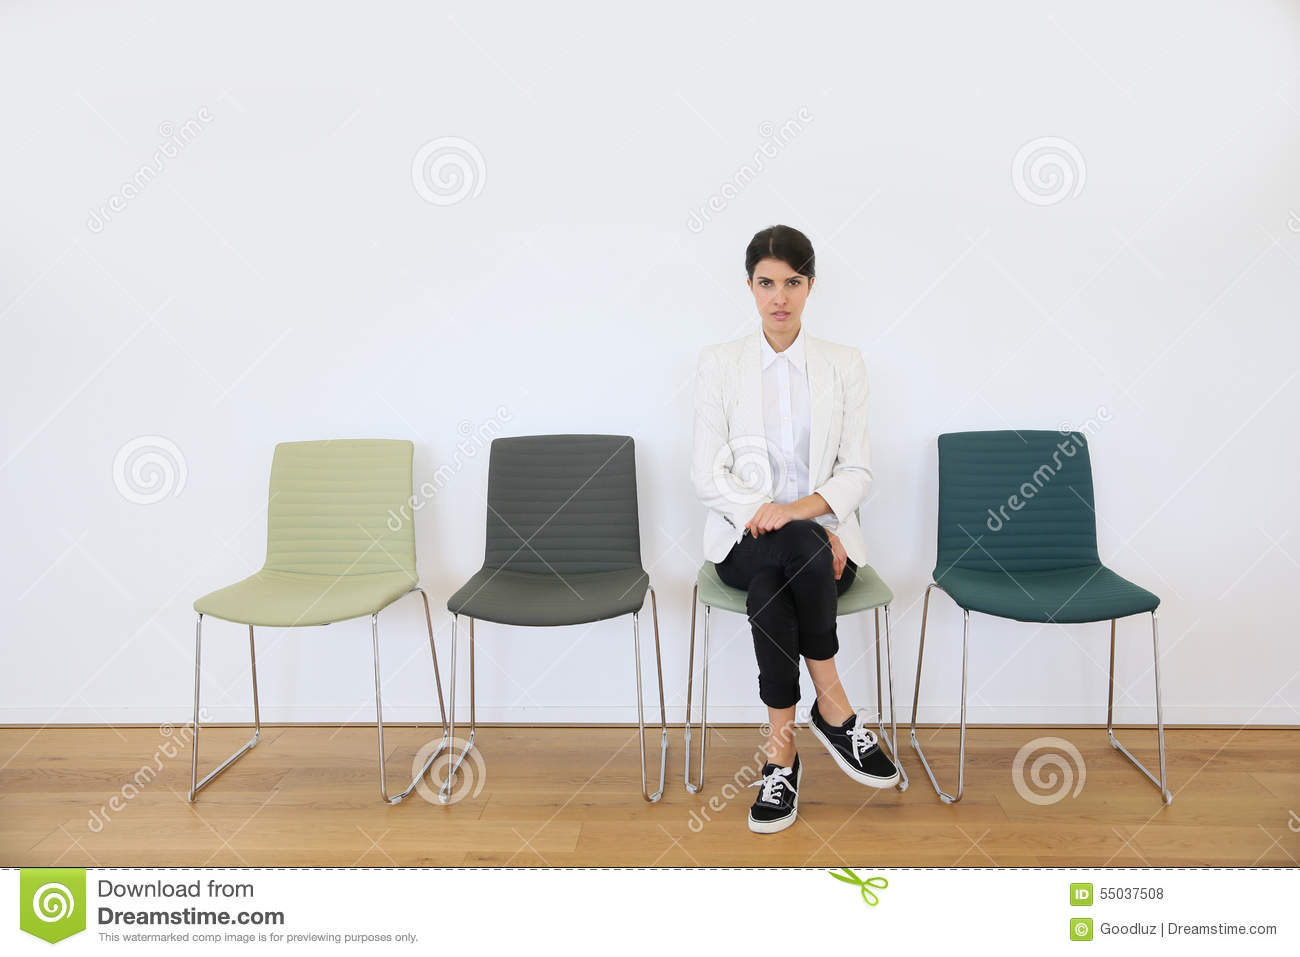 Job applicant waiting for interview